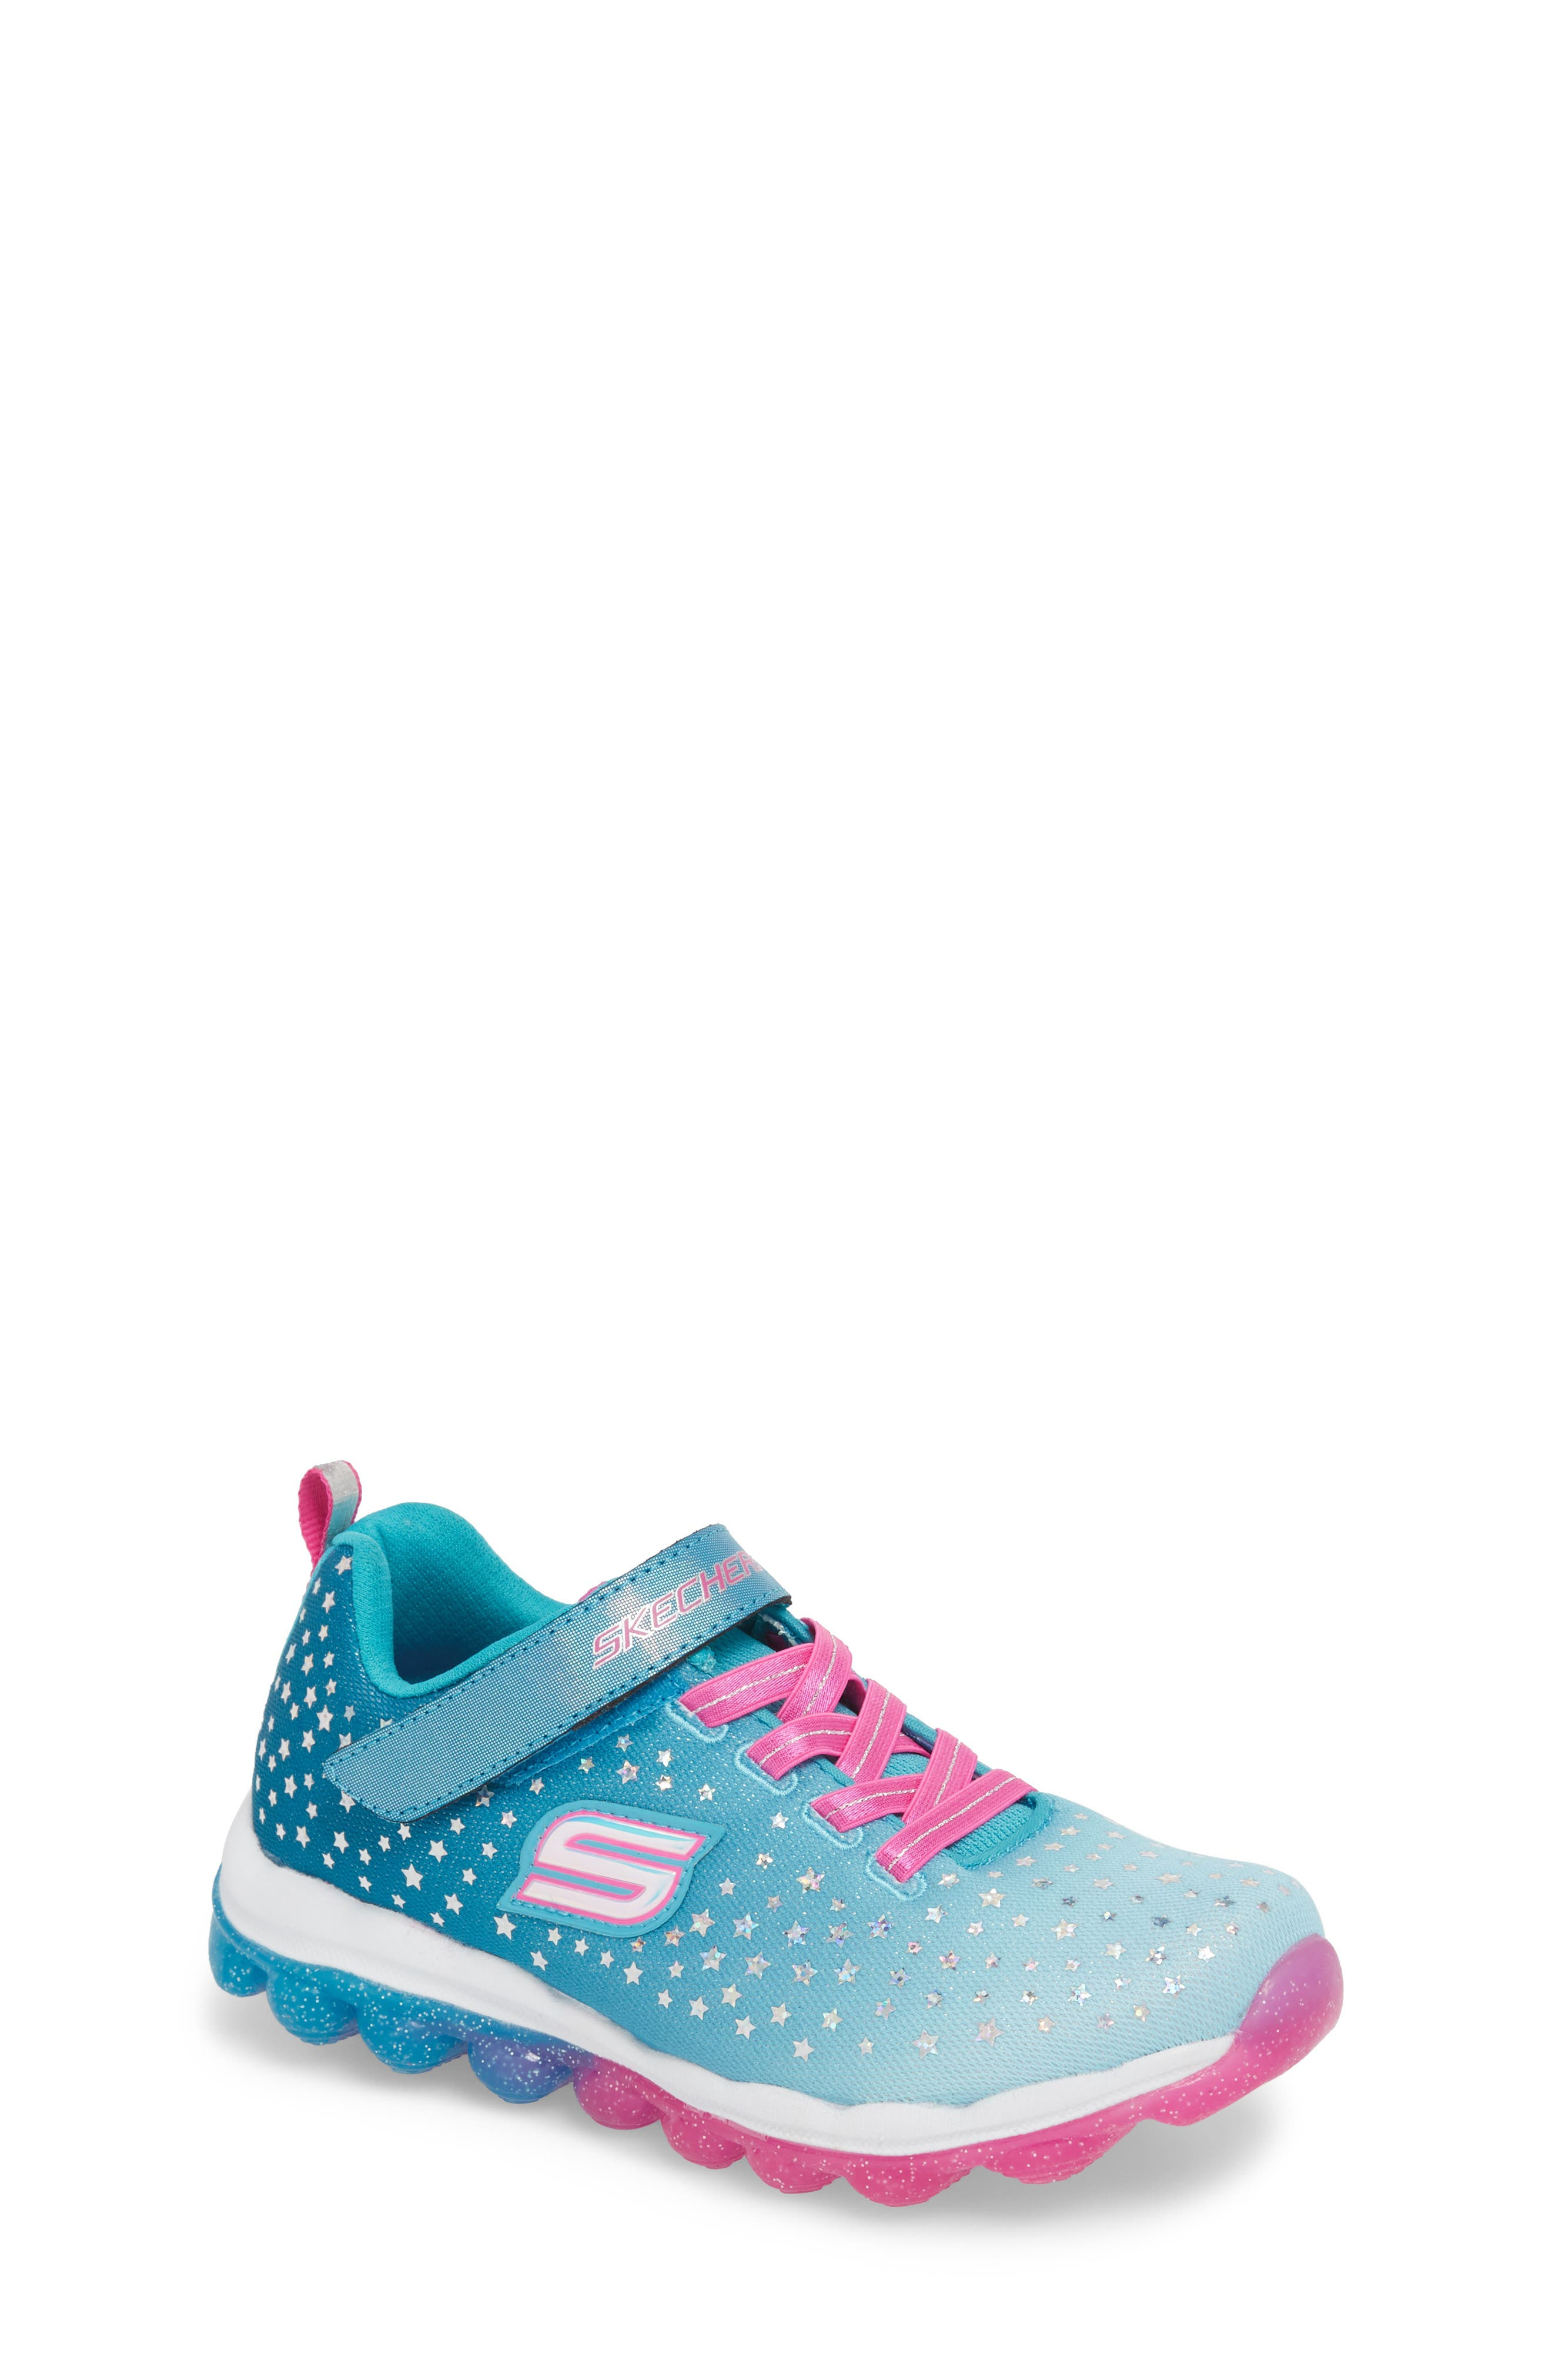 Skech-Air Ultra Glam It Up Sneaker,                             Main thumbnail 1, color,                             425